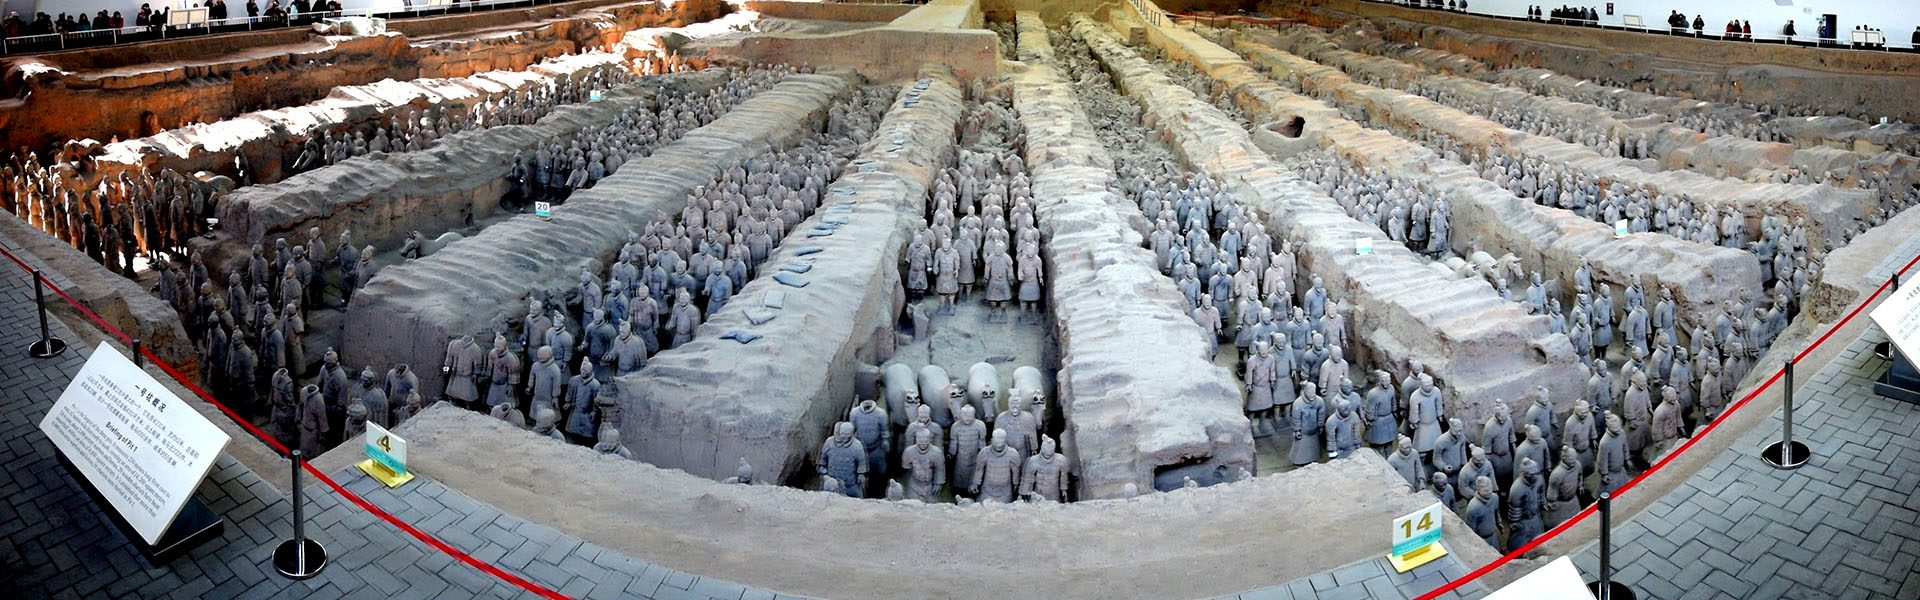 Rows of Terracotta Soldiers in Xian